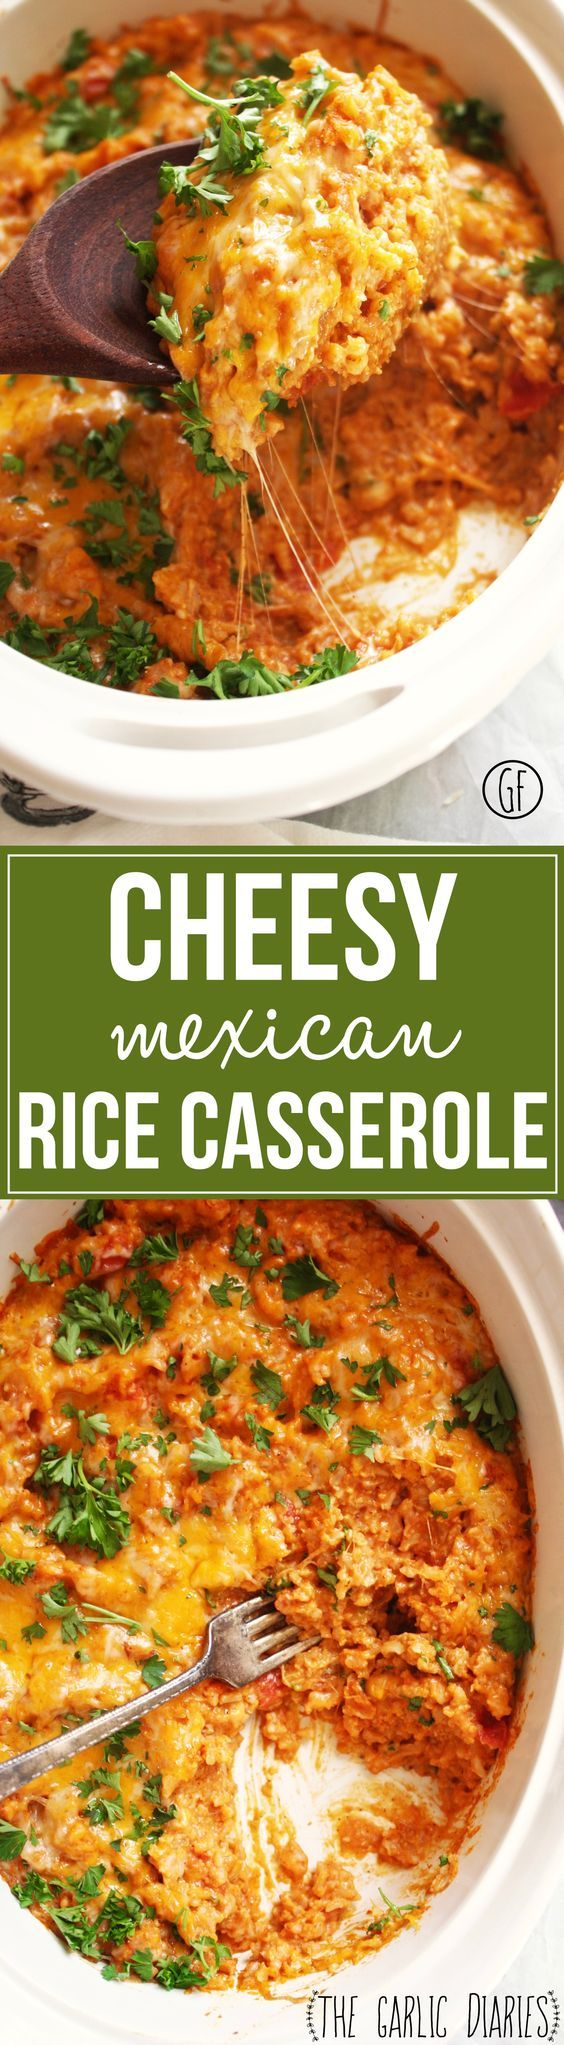 Cheesy Mexican Rice Casserole - Yummy, flavorful, and simple, this mouth watering casserole is the perfect main or side dish for any occasion! Gluten Free - TheGarlicDiaries.com